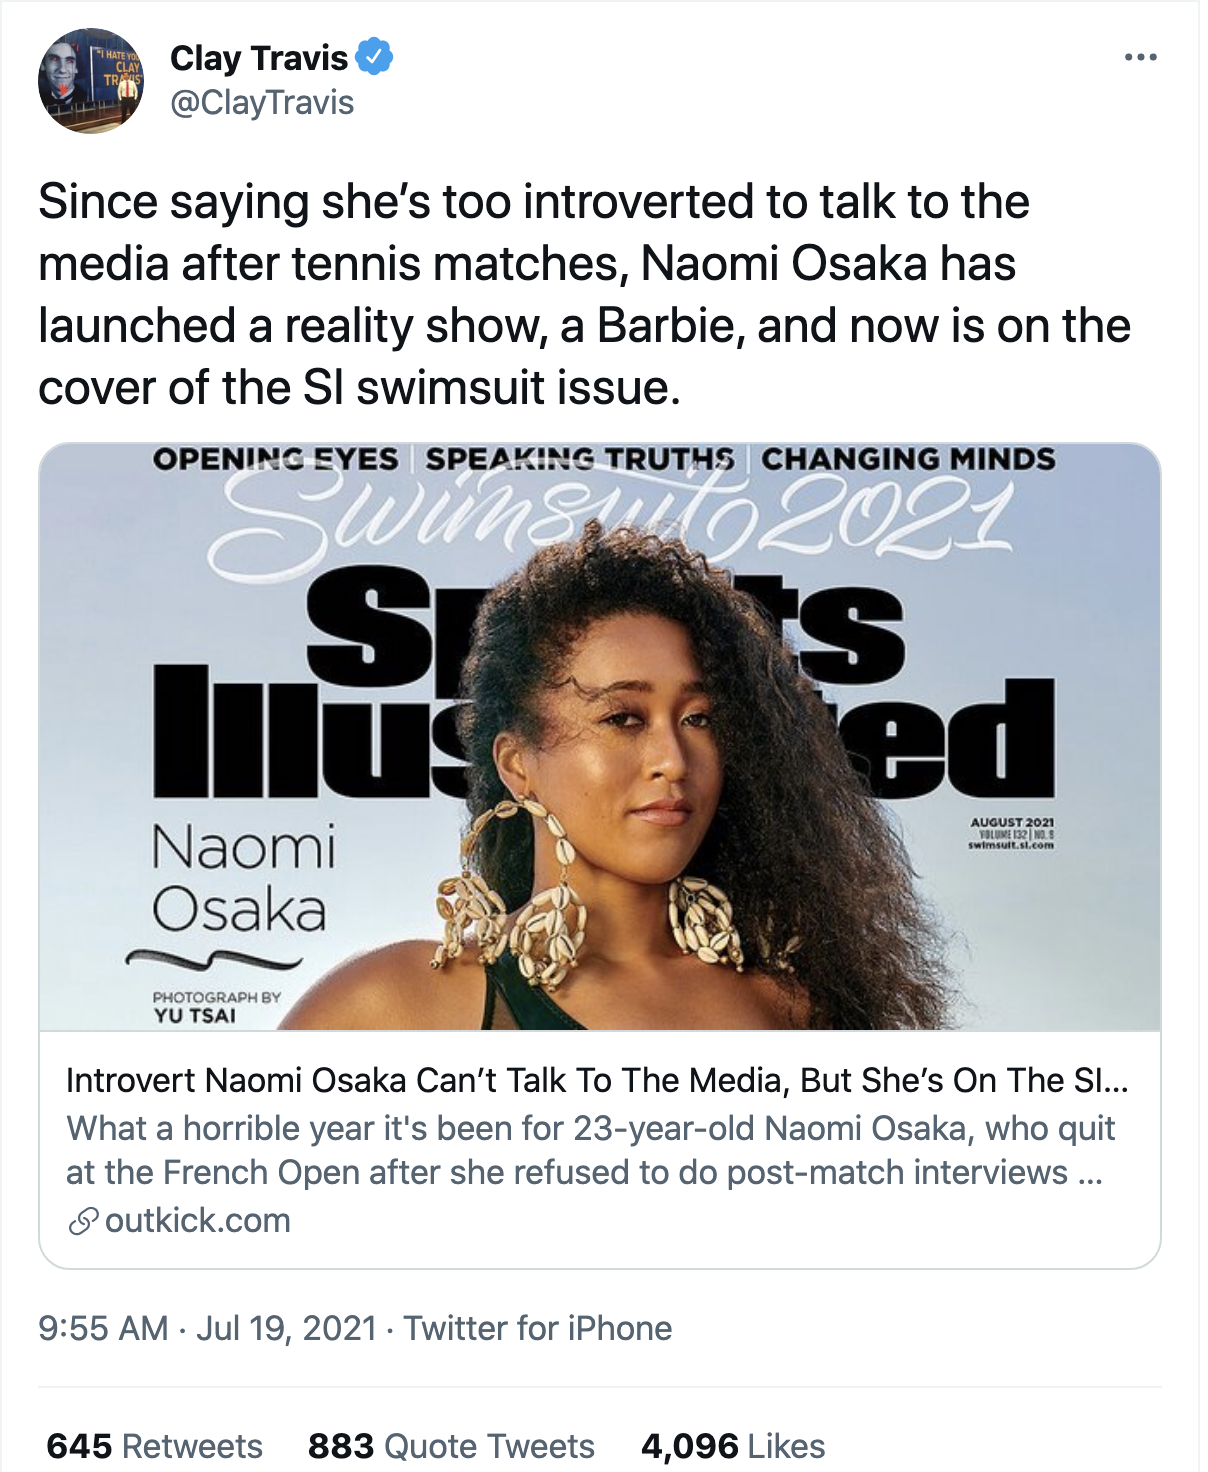 Screen-Shot-2021-07-20-at-10.50.52-AM Naomi Osaka Aces Disgraced Megyn Kelly Over Petty Online Attack Featured Politics Social Media Sports Top Stories